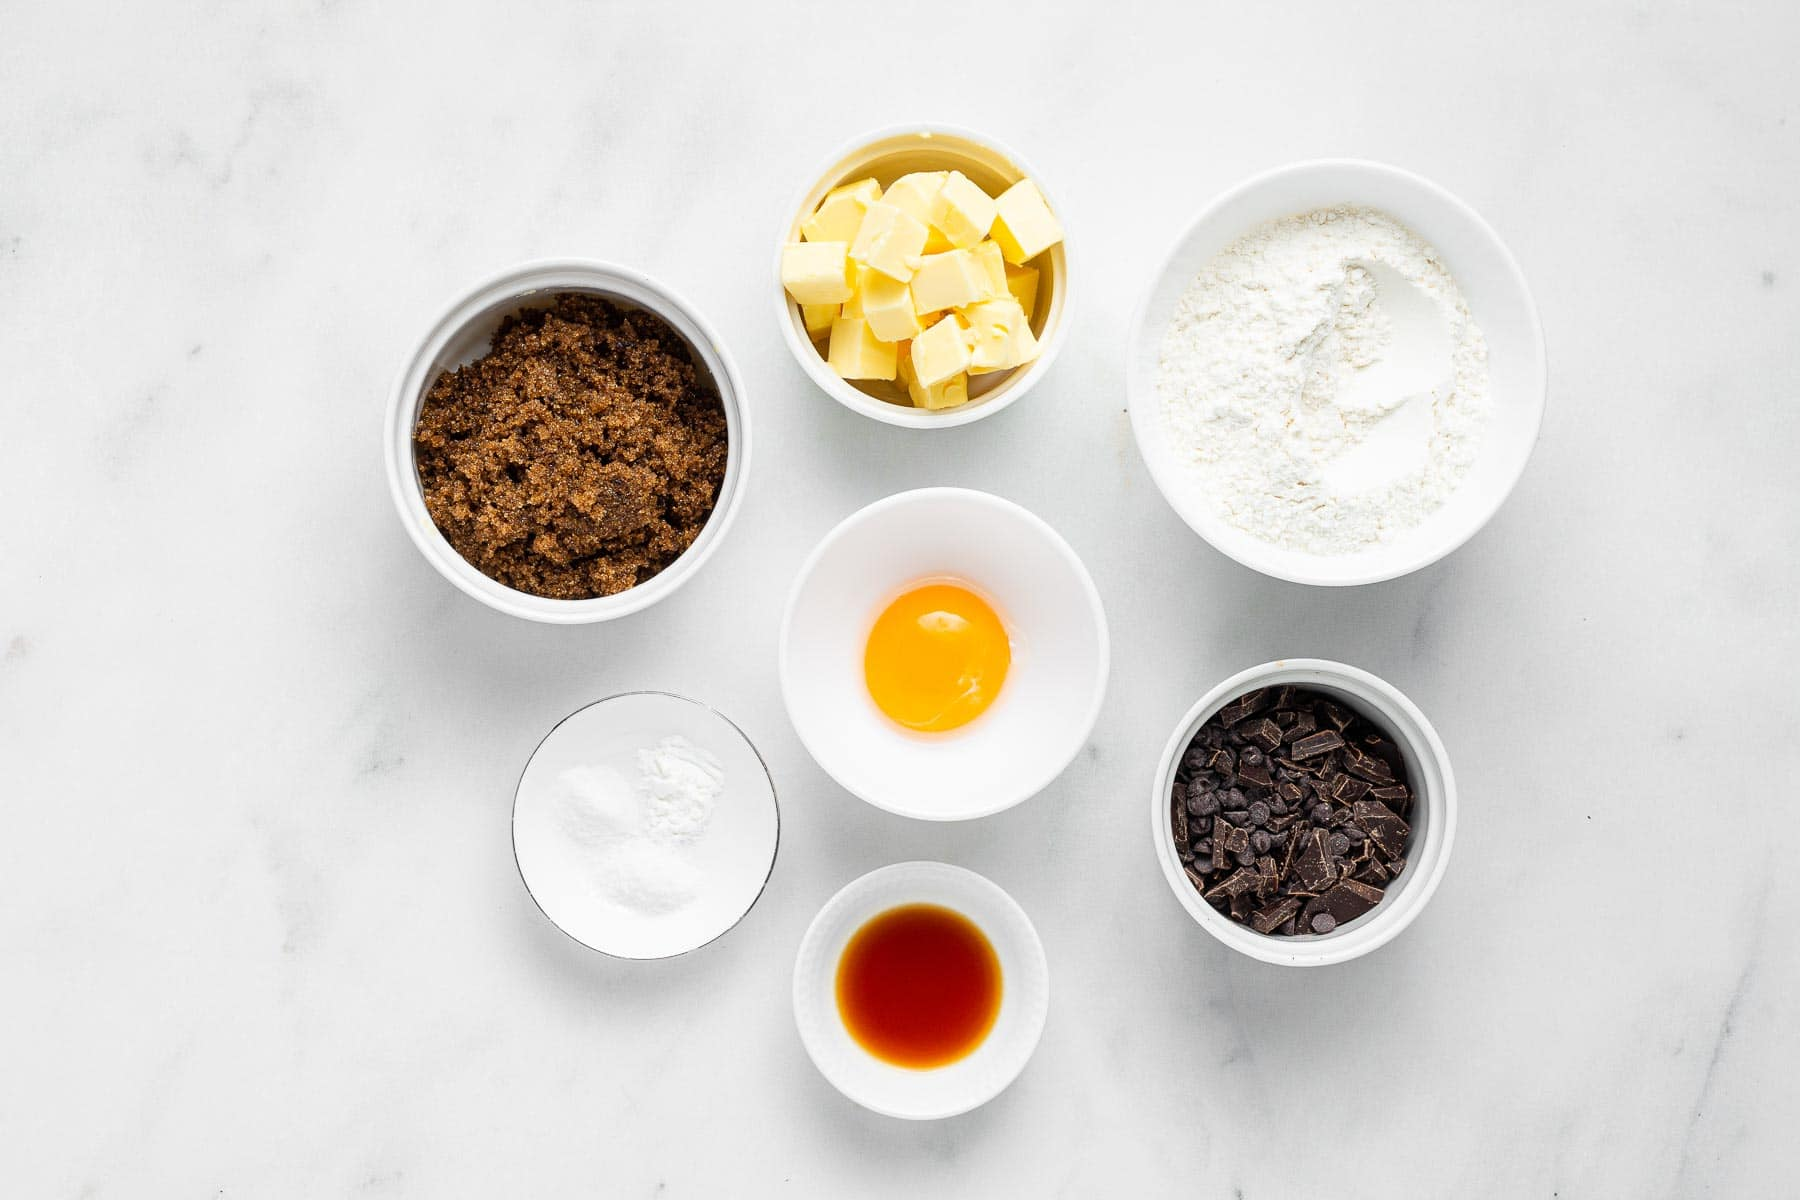 Ingredients for brown sugar chocolate chip cookies on white table in bowls.